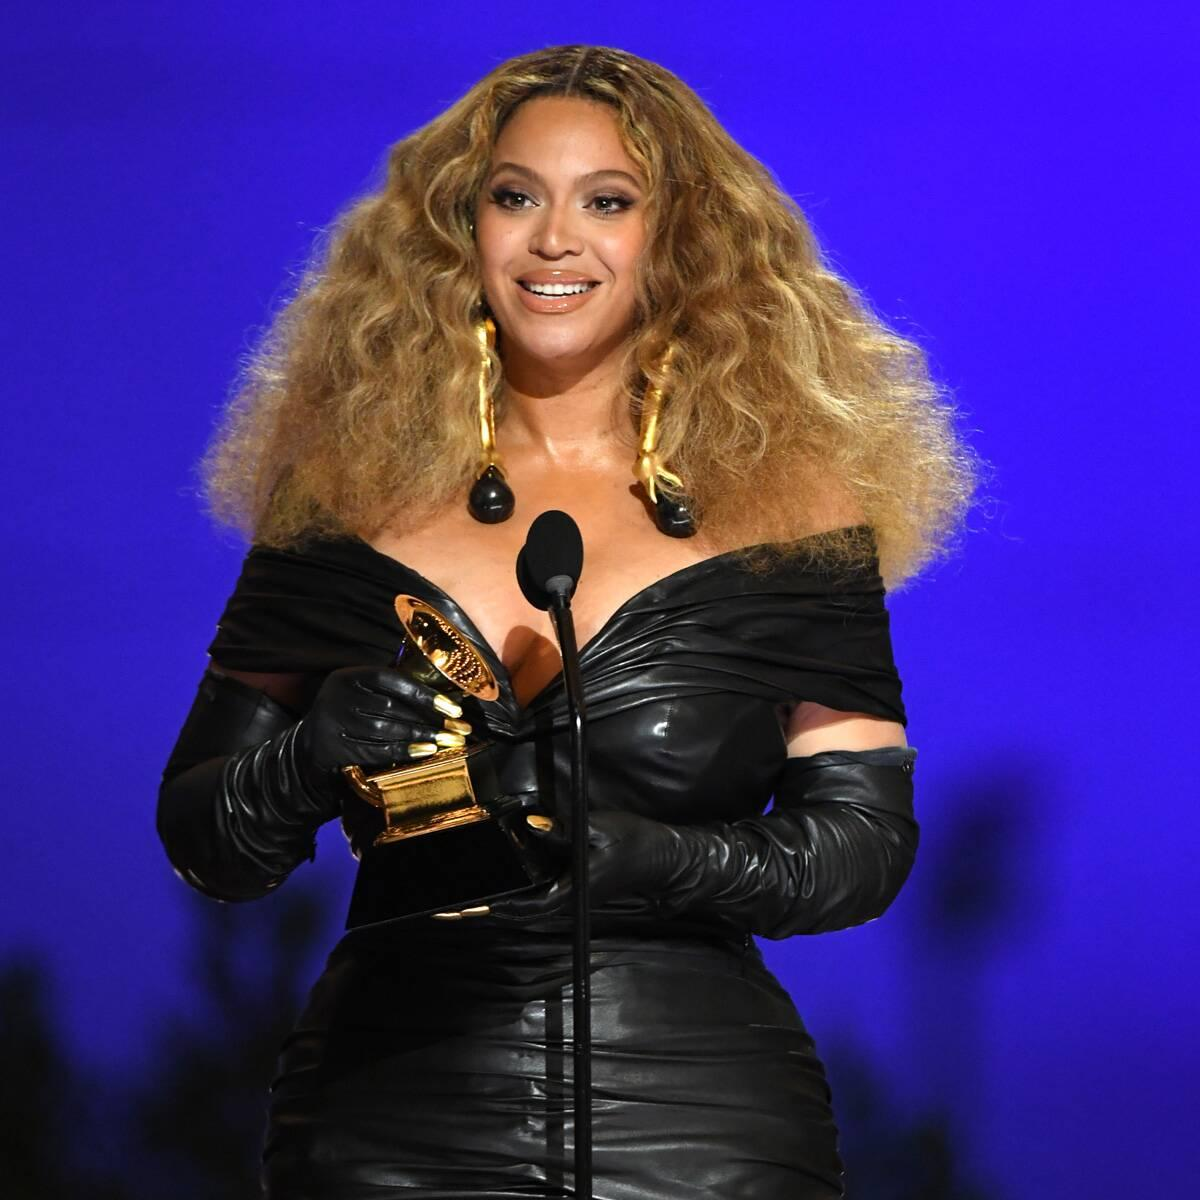 Beyoncé Shares Touching 4th Birthday Tribute to Twins Rumi and Sir – Yahoo Entertainment